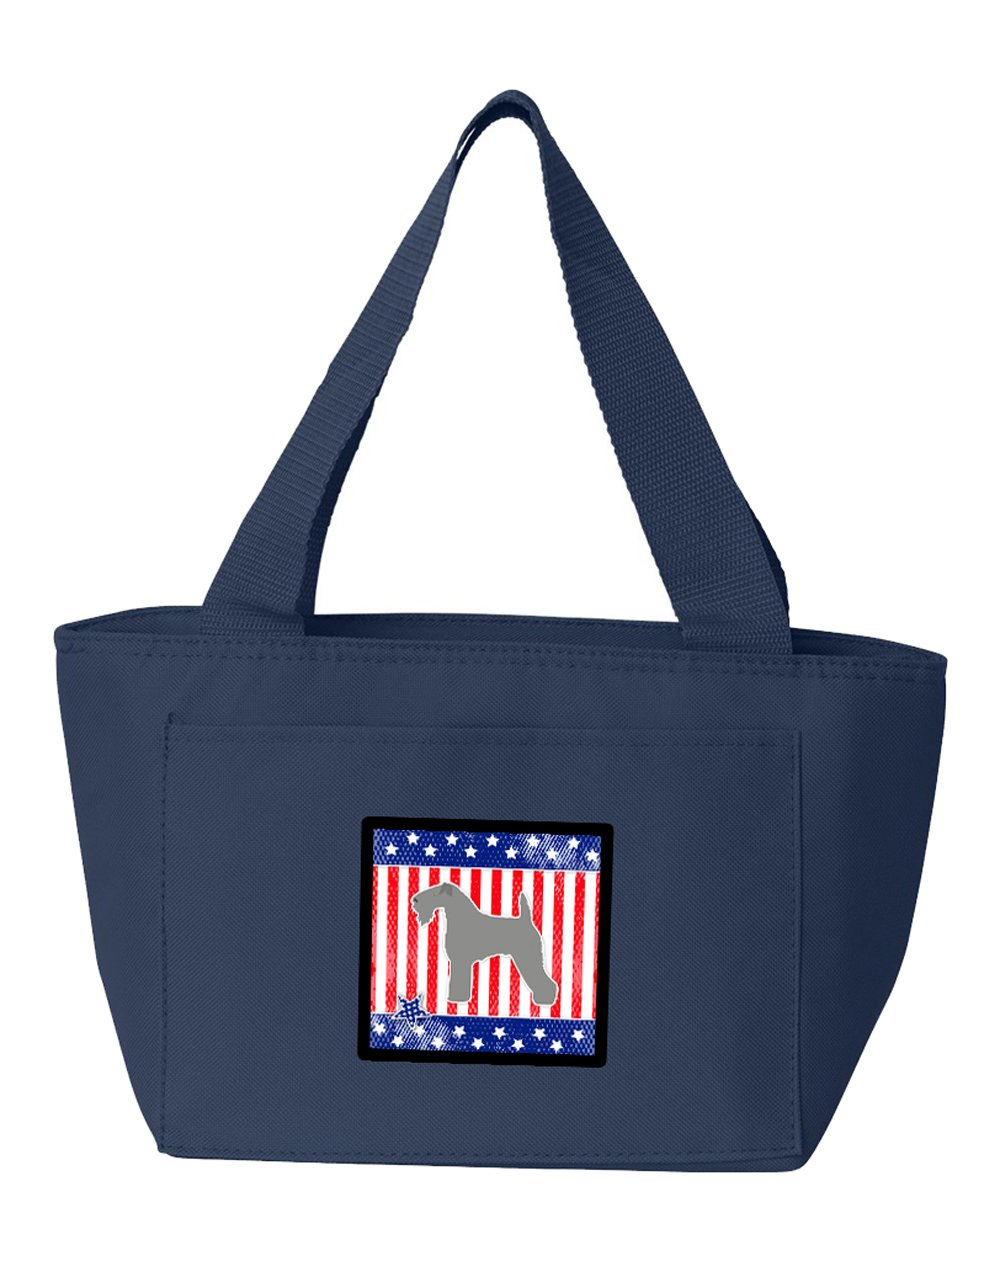 Caroline's Treasures BB3292NA-8808 USA Patriotic Kerry Blue Terrier Insulated Lunch Bag, Large, Multicolor   B071HX9NJP